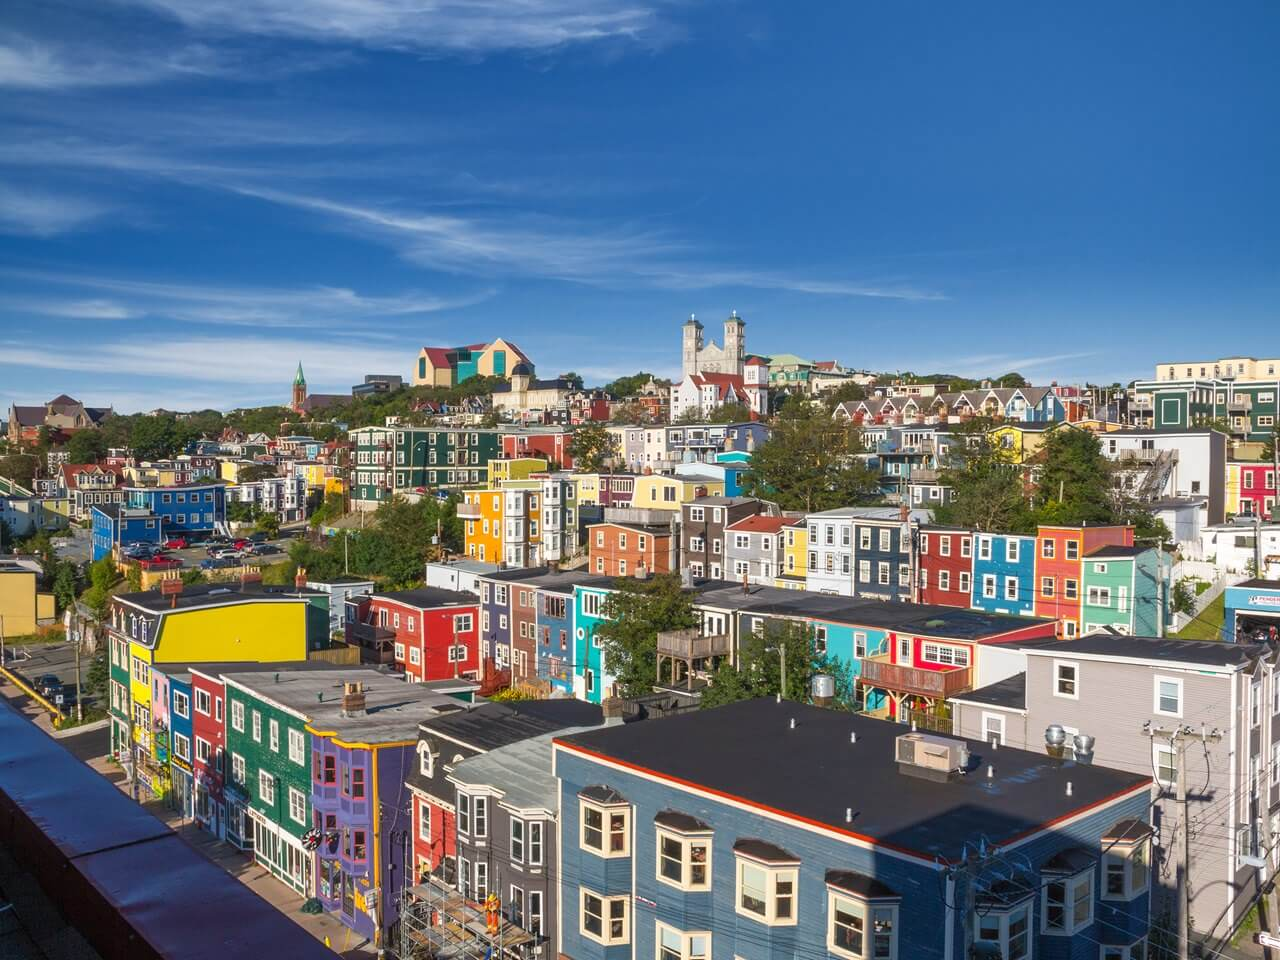 LOCATION - A vibrant, historic, colourful, and contemporary city – 500 years young. St. John's is the perfect combination of big-city luxury and traditional small-town charm. It is one of the oldest and most easterly cities in North America.Destination St. John'sTourism Newfoundland & Labrador